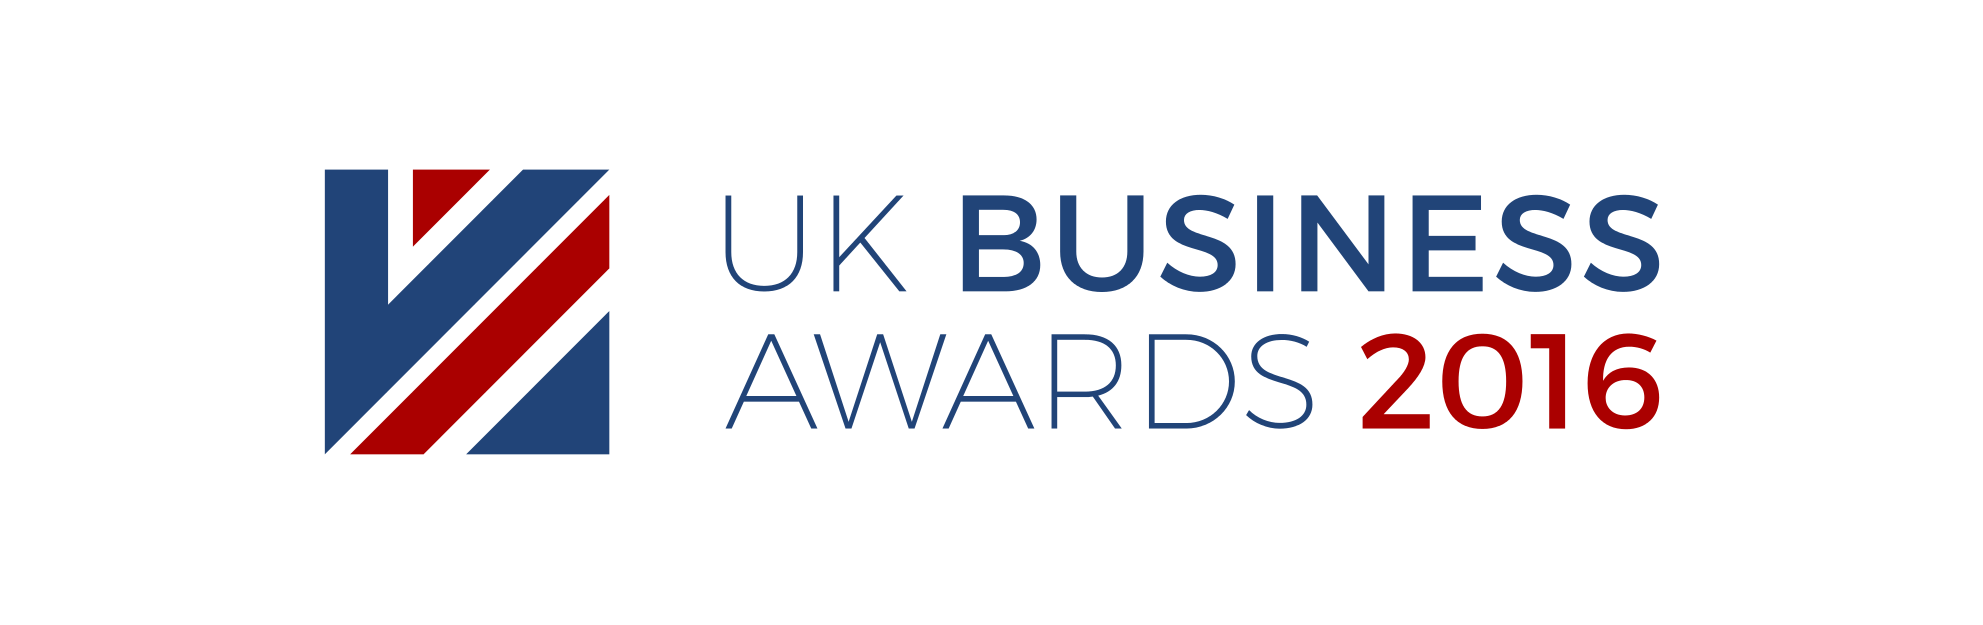 uk_business_awards_wide